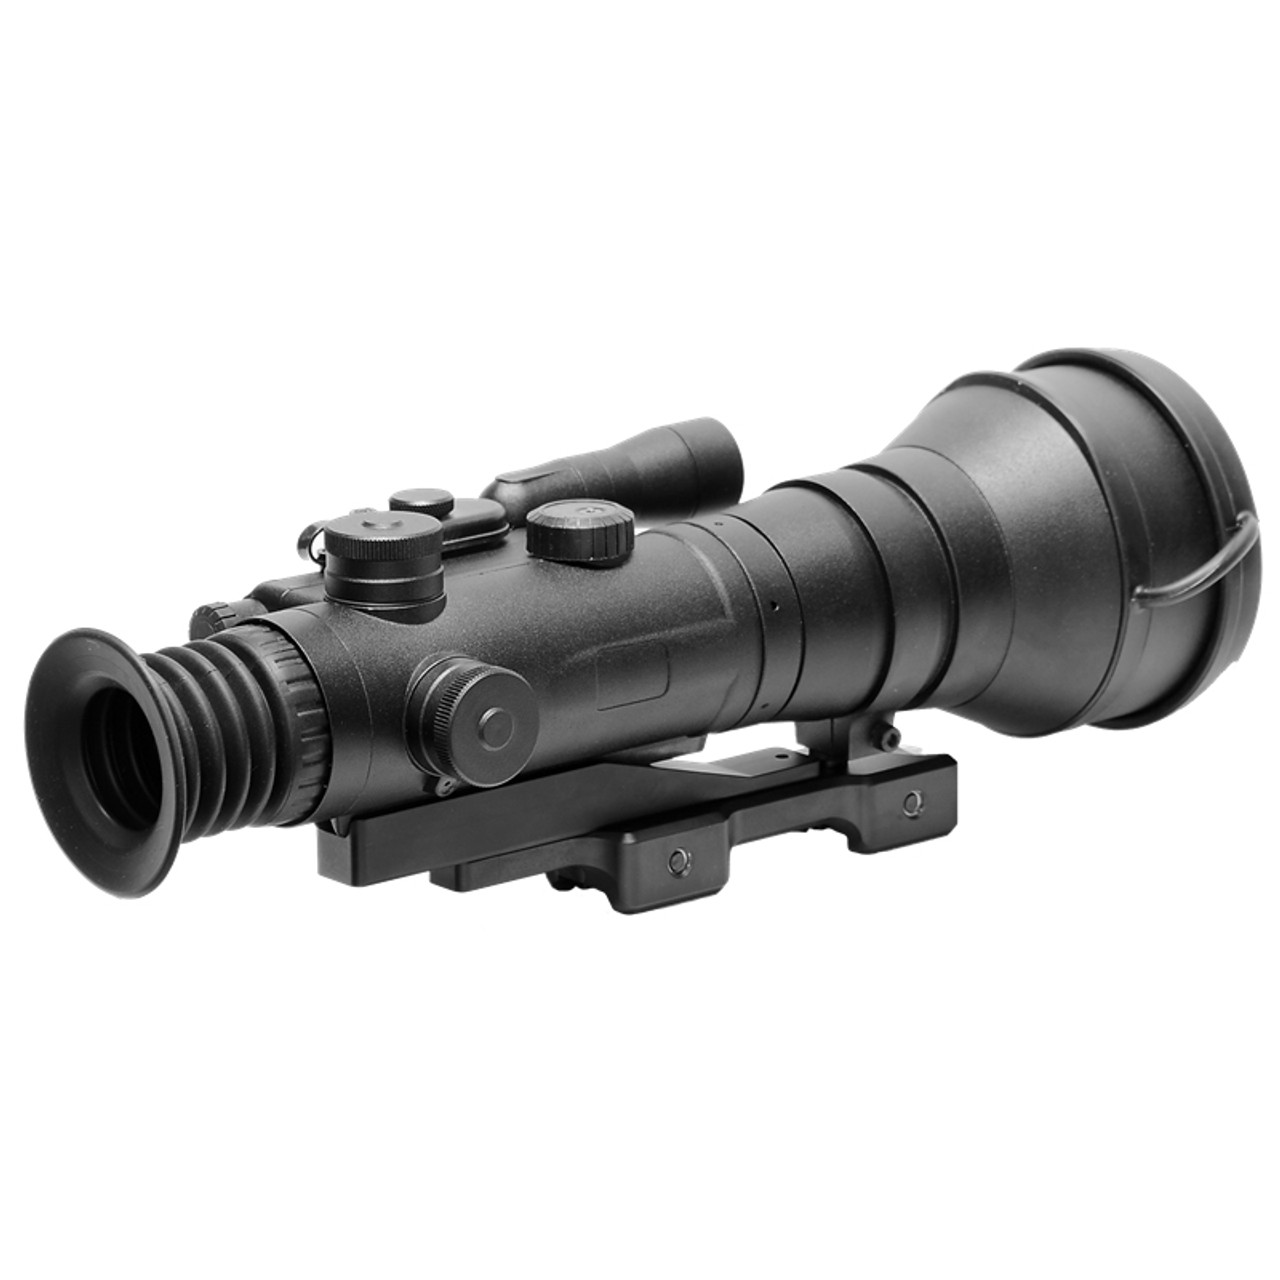 Night Vision Riflescopes GS-R